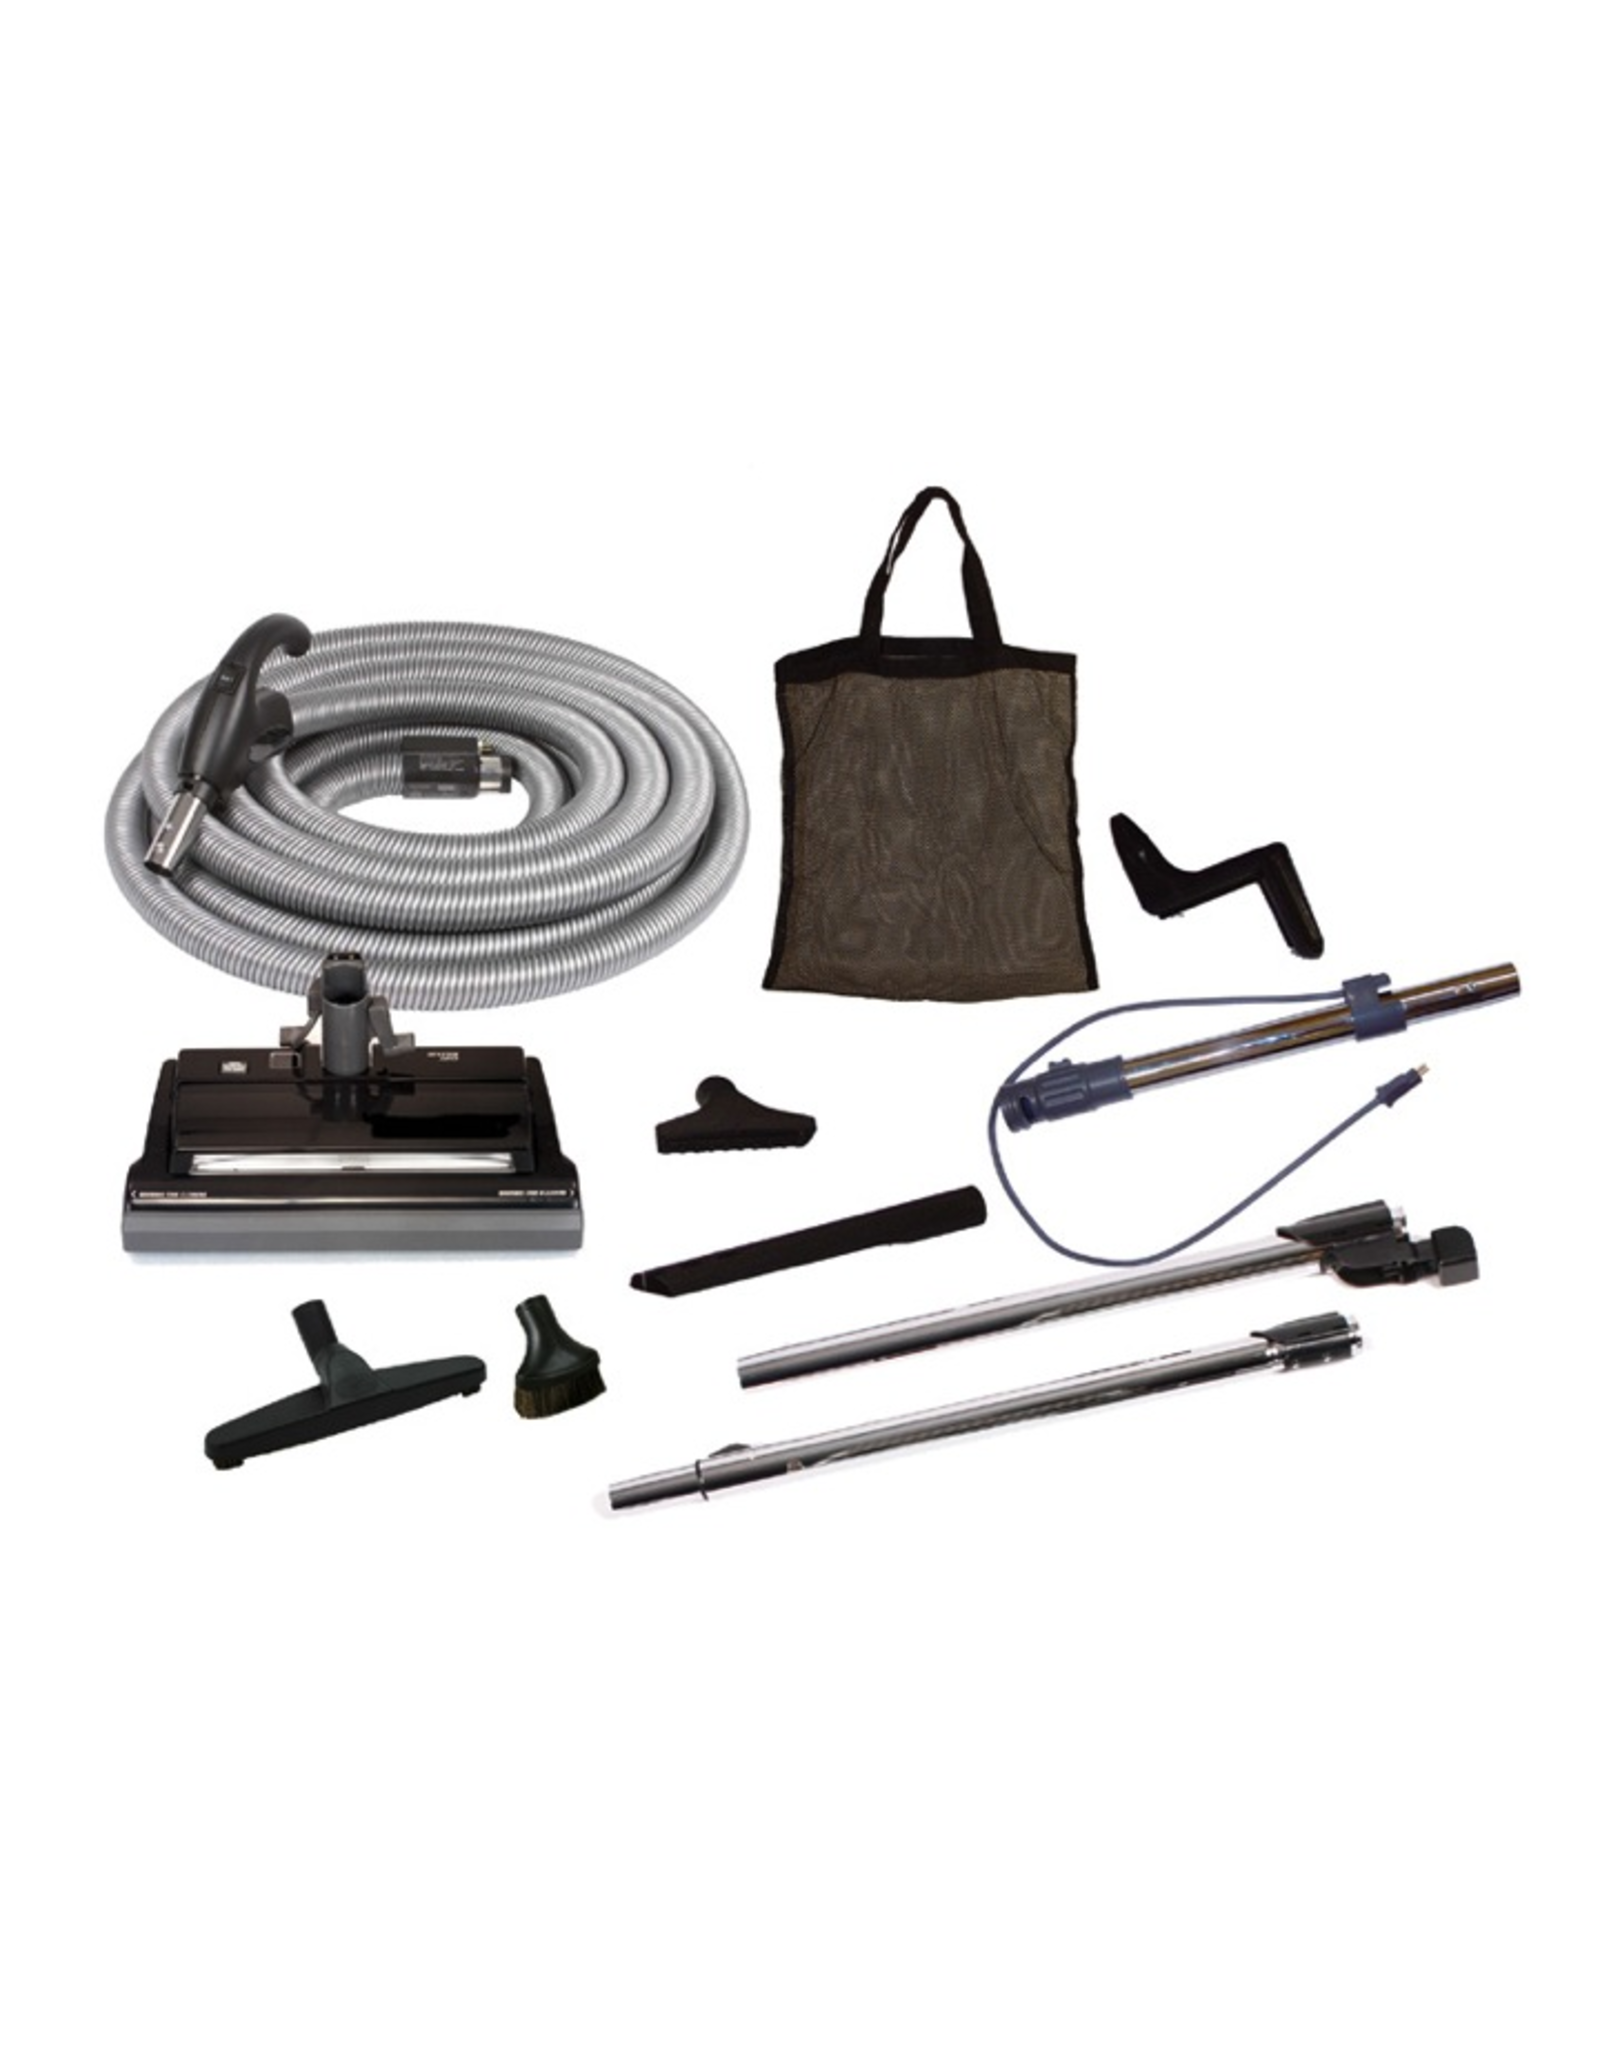 VacuMaid Deluxe Central Vacuum Electric Cleaning Set, Direct Connect, 35'